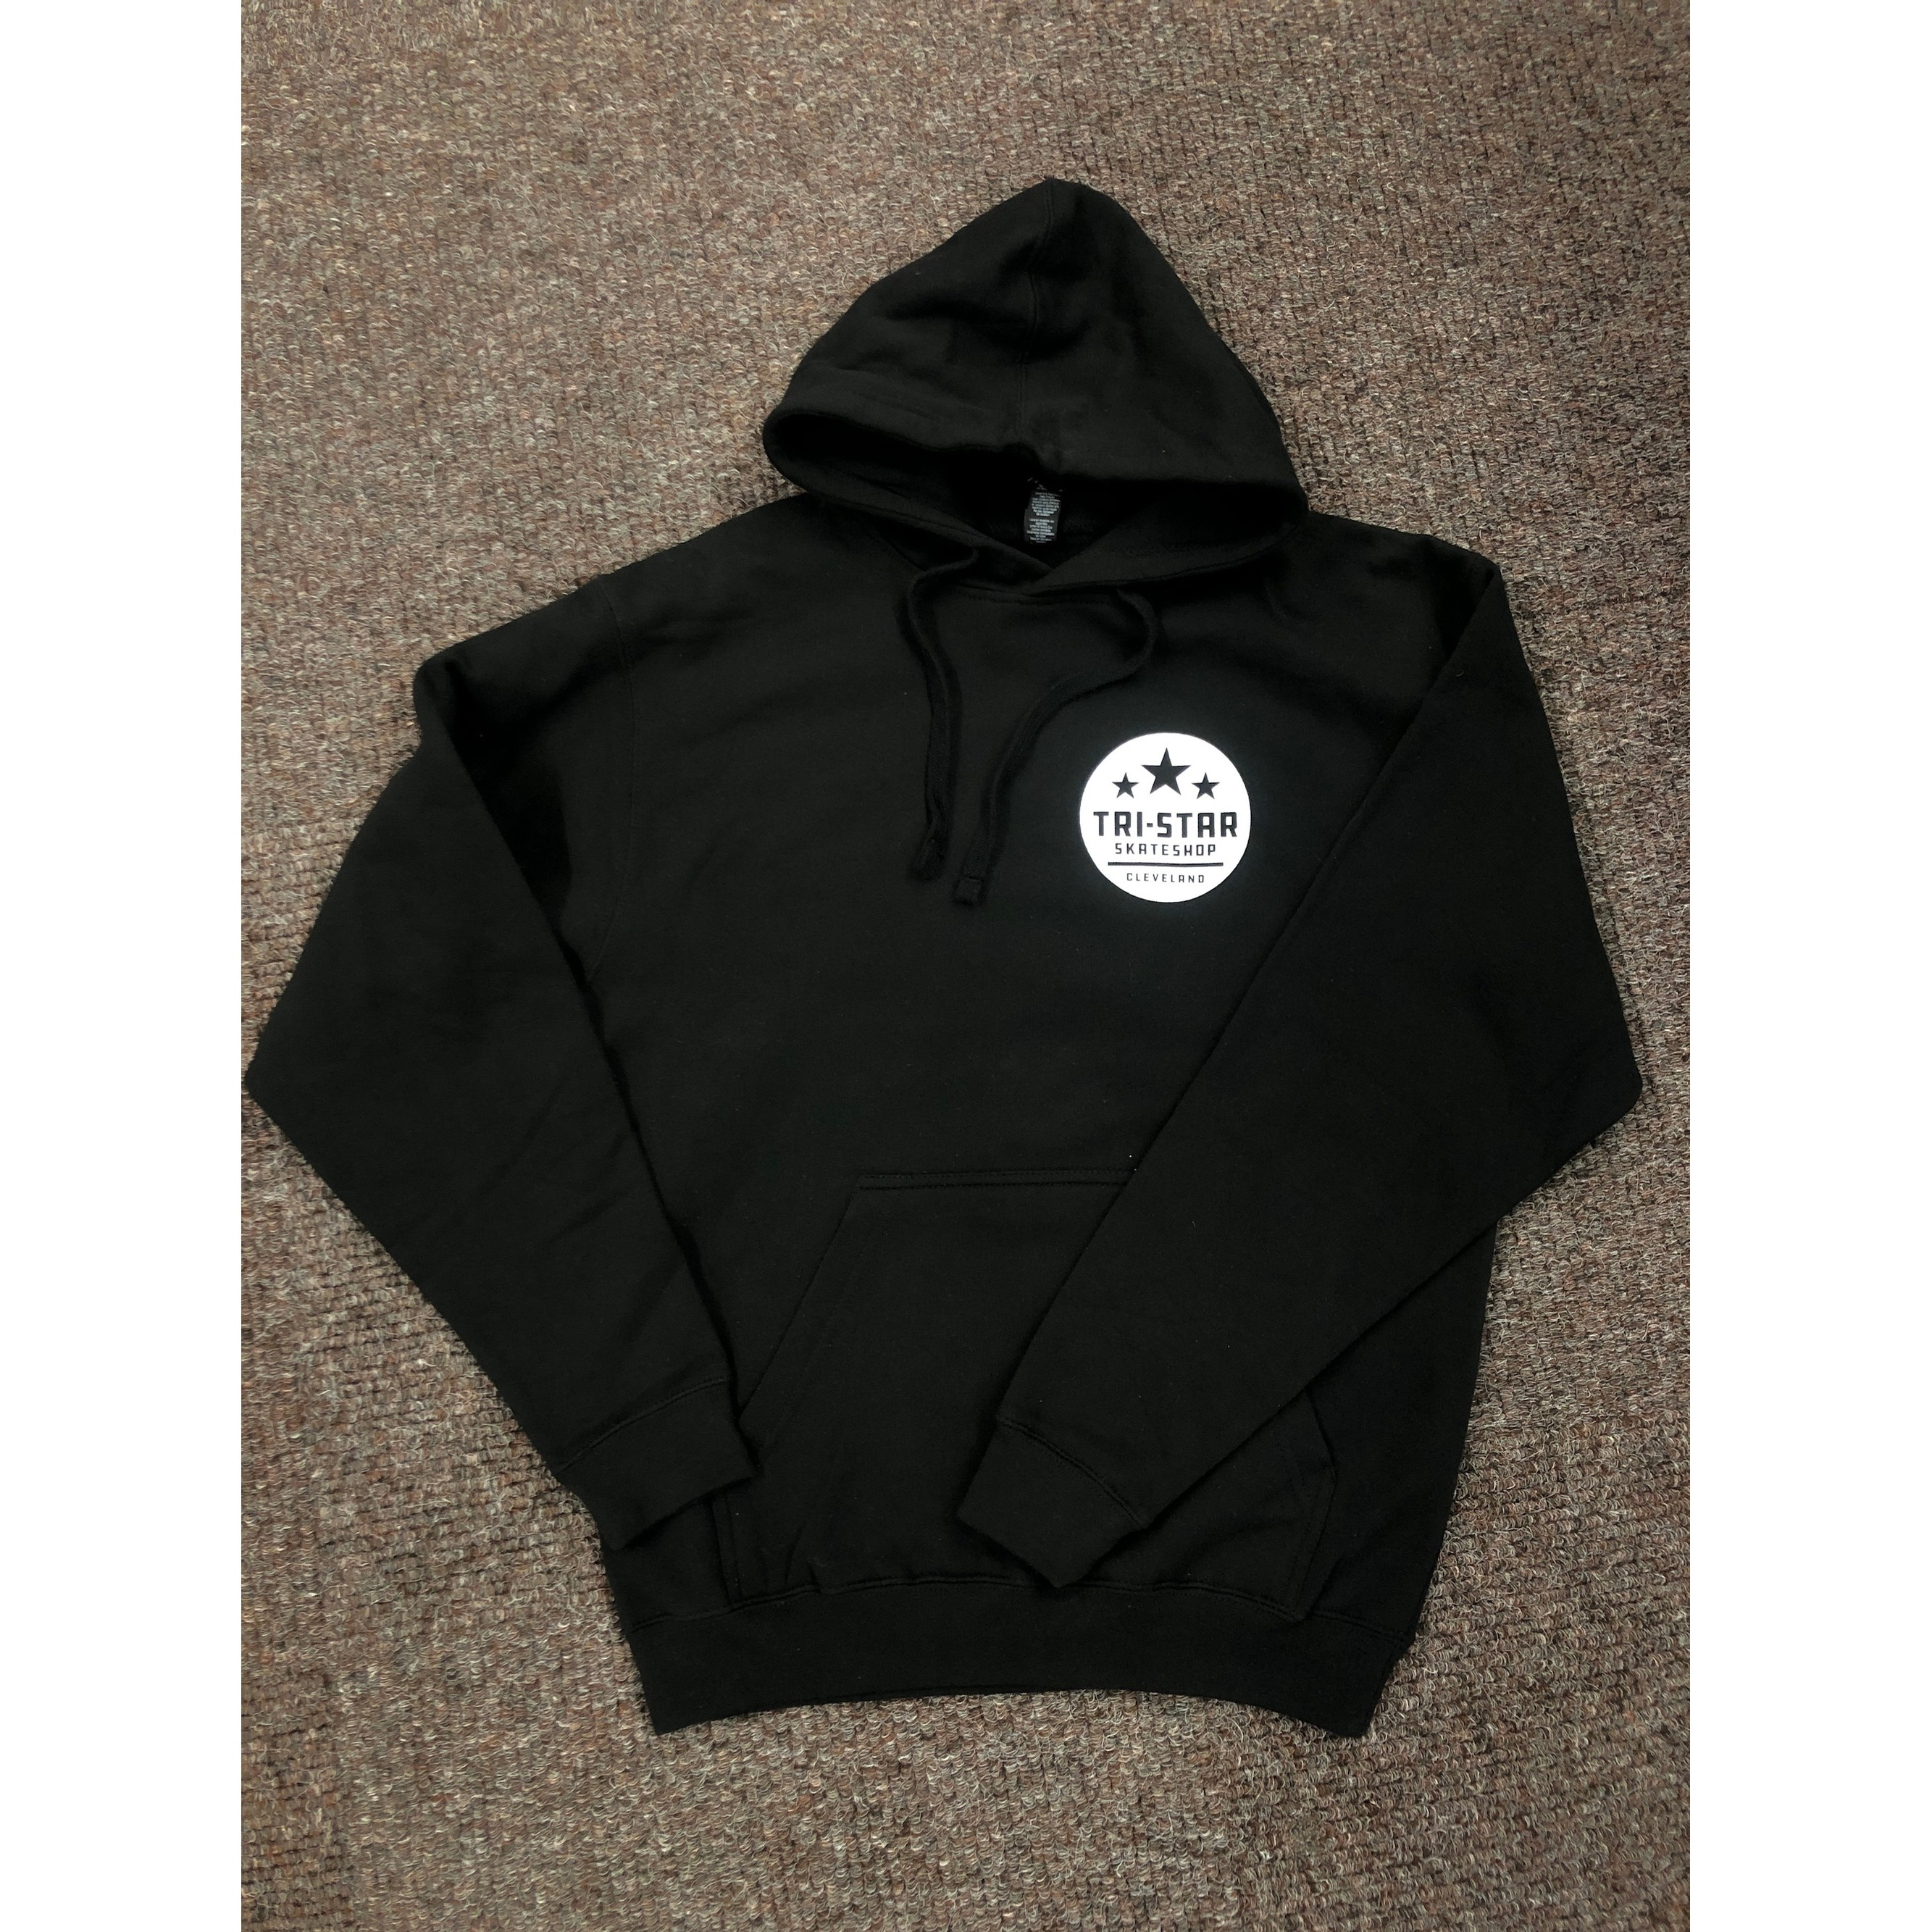 Tri-Star Circle Logo Black Shop Hoodie